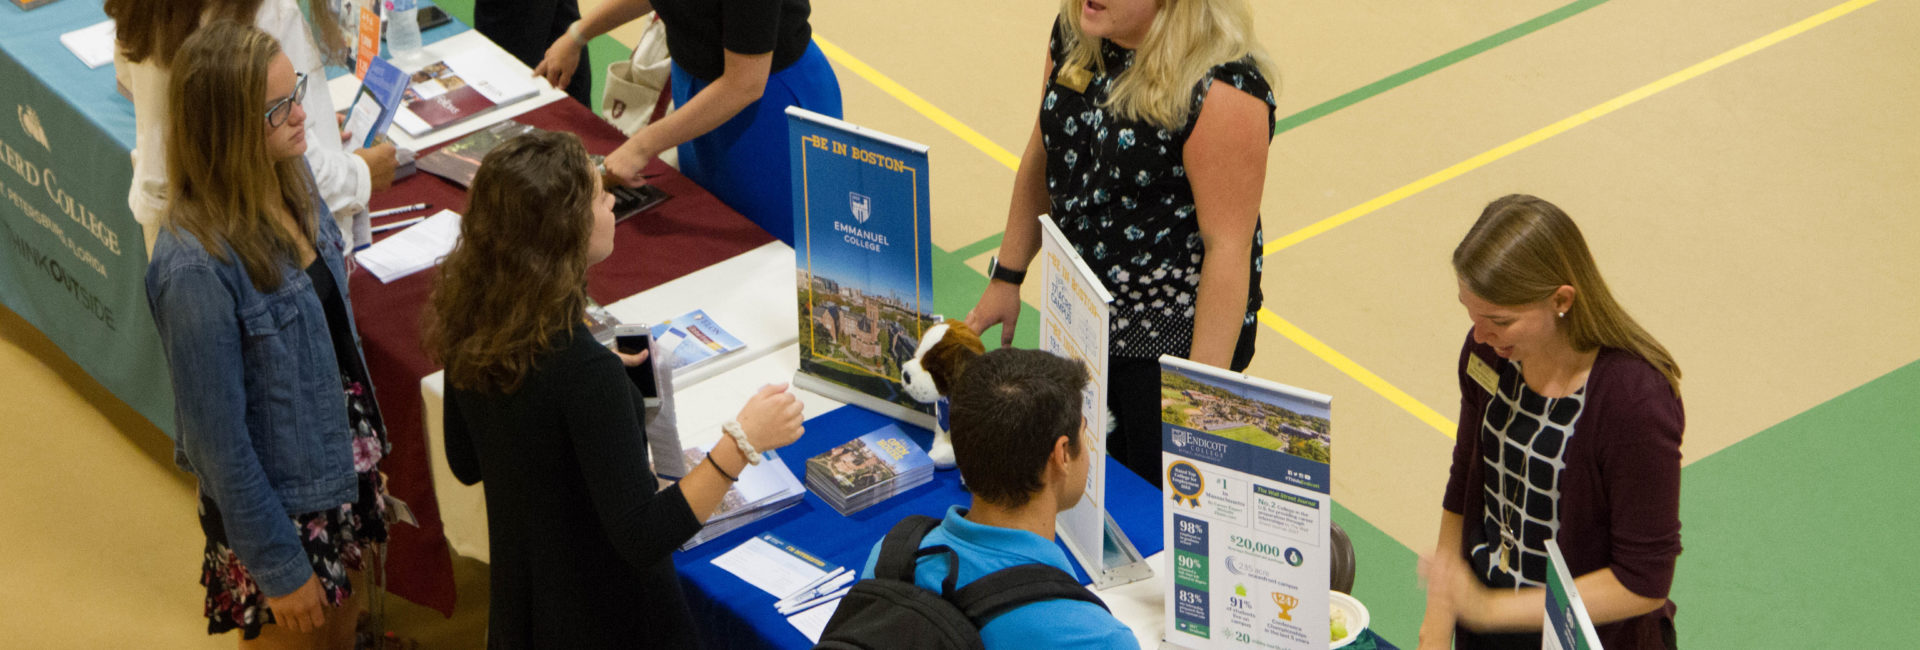 New Hampton School College Fair